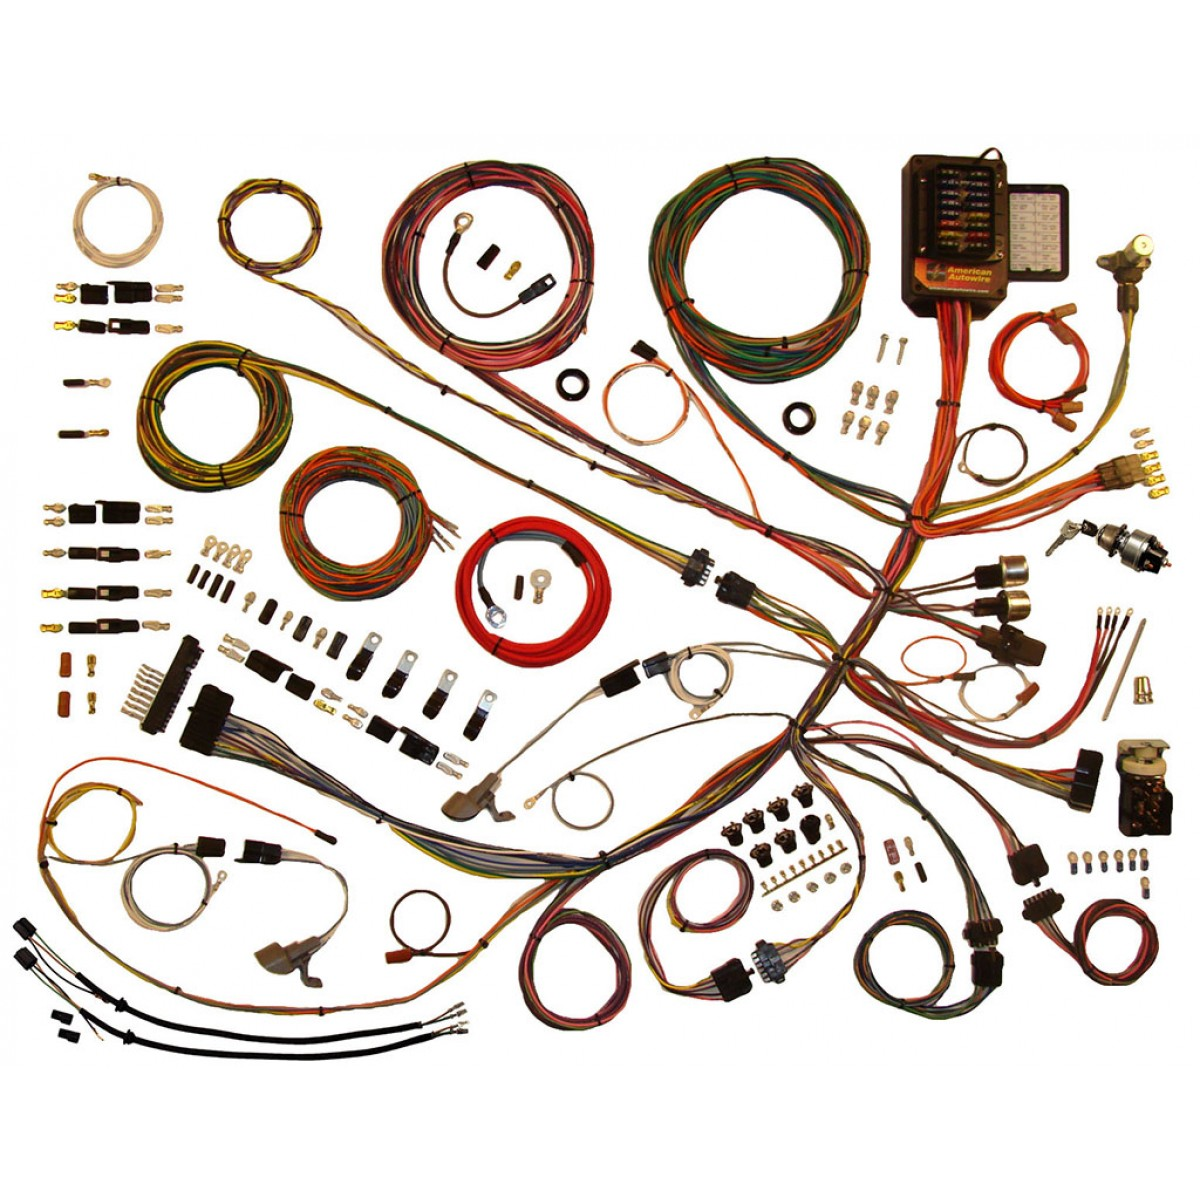 complete wiring harness kit 1953 1956 ford f100 part 510303 ford truck wiring harness f100 1953 1956 ford f100 wiring harness complete wiring harness kit ford wiring harness at alyssarenee.co